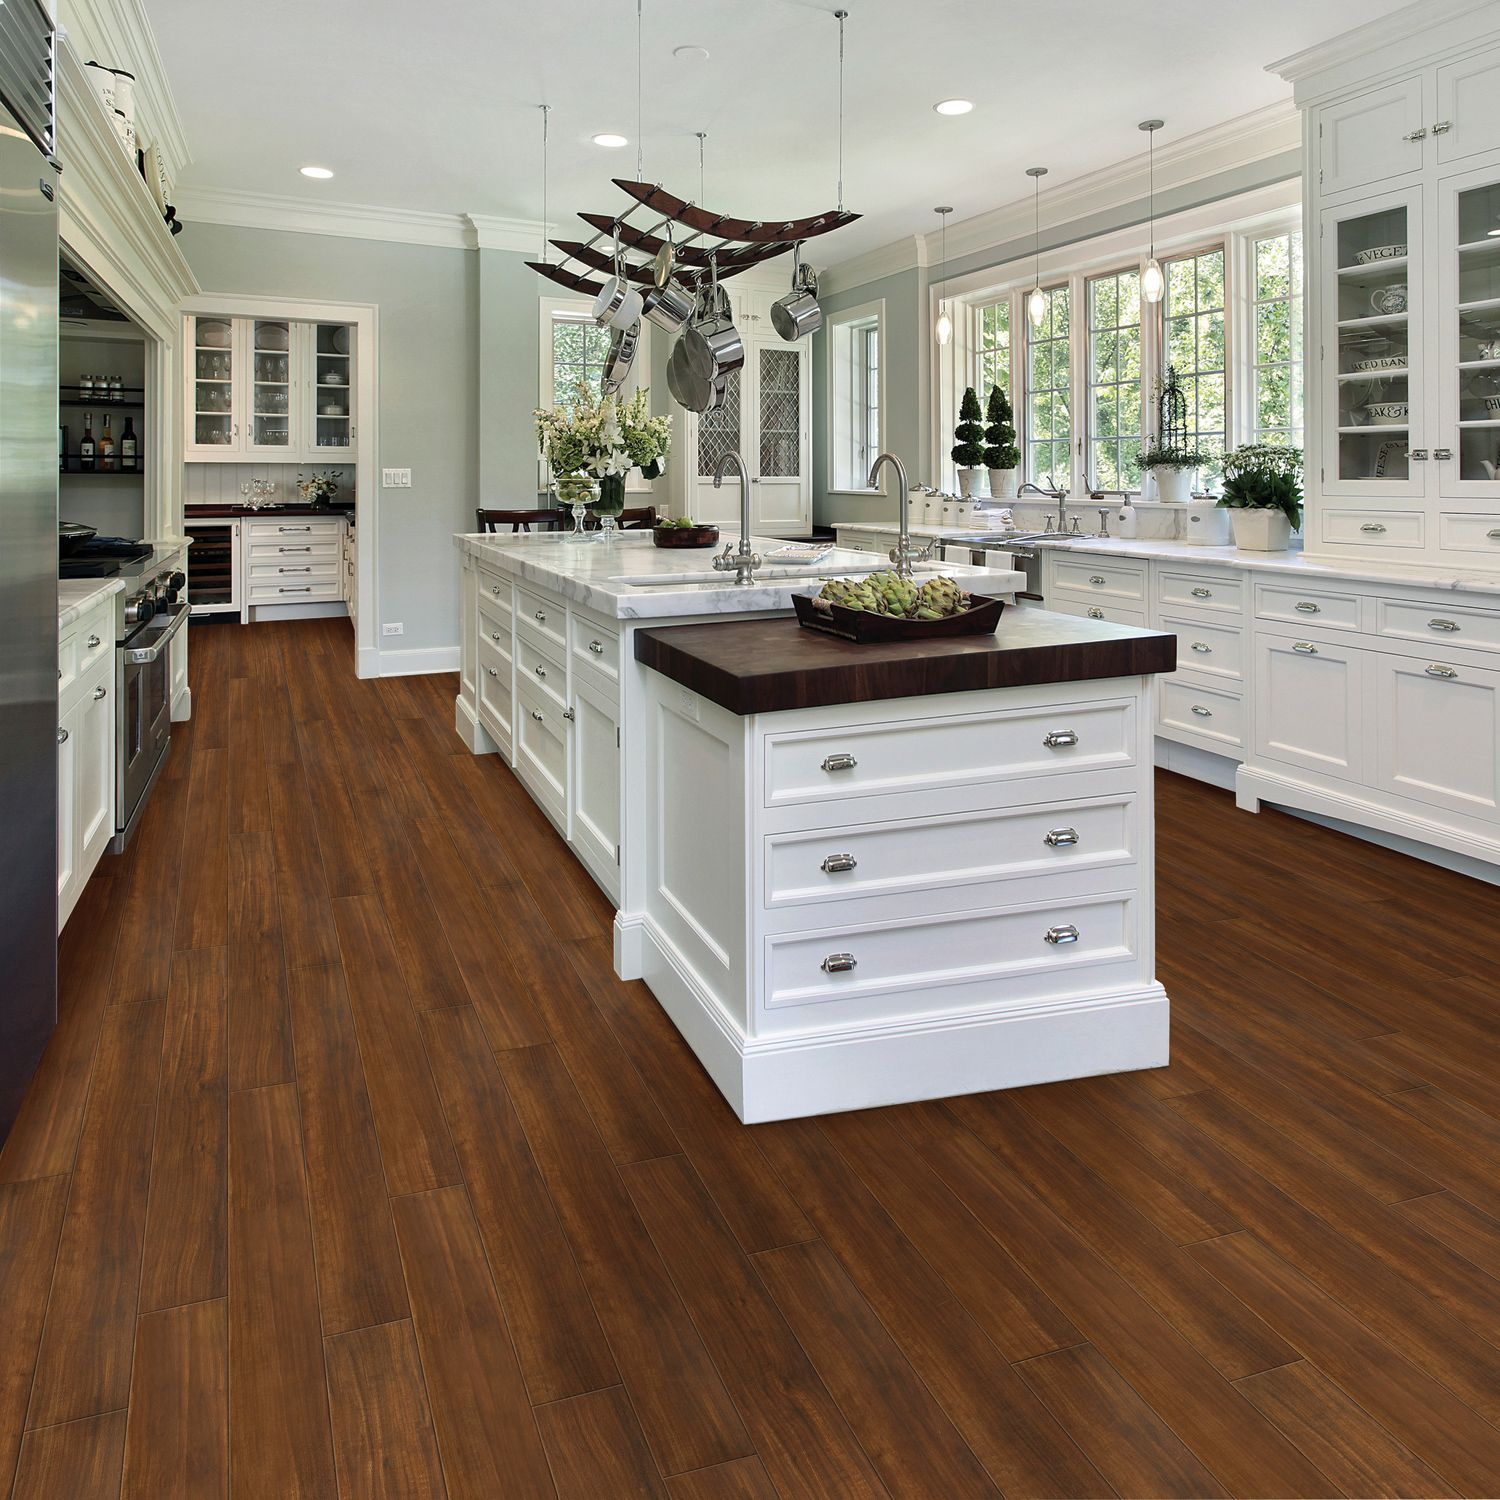 Walnut Kitchen Floor Select Surfaces American Walnut Click Luxury Vinyl Plank Flooring